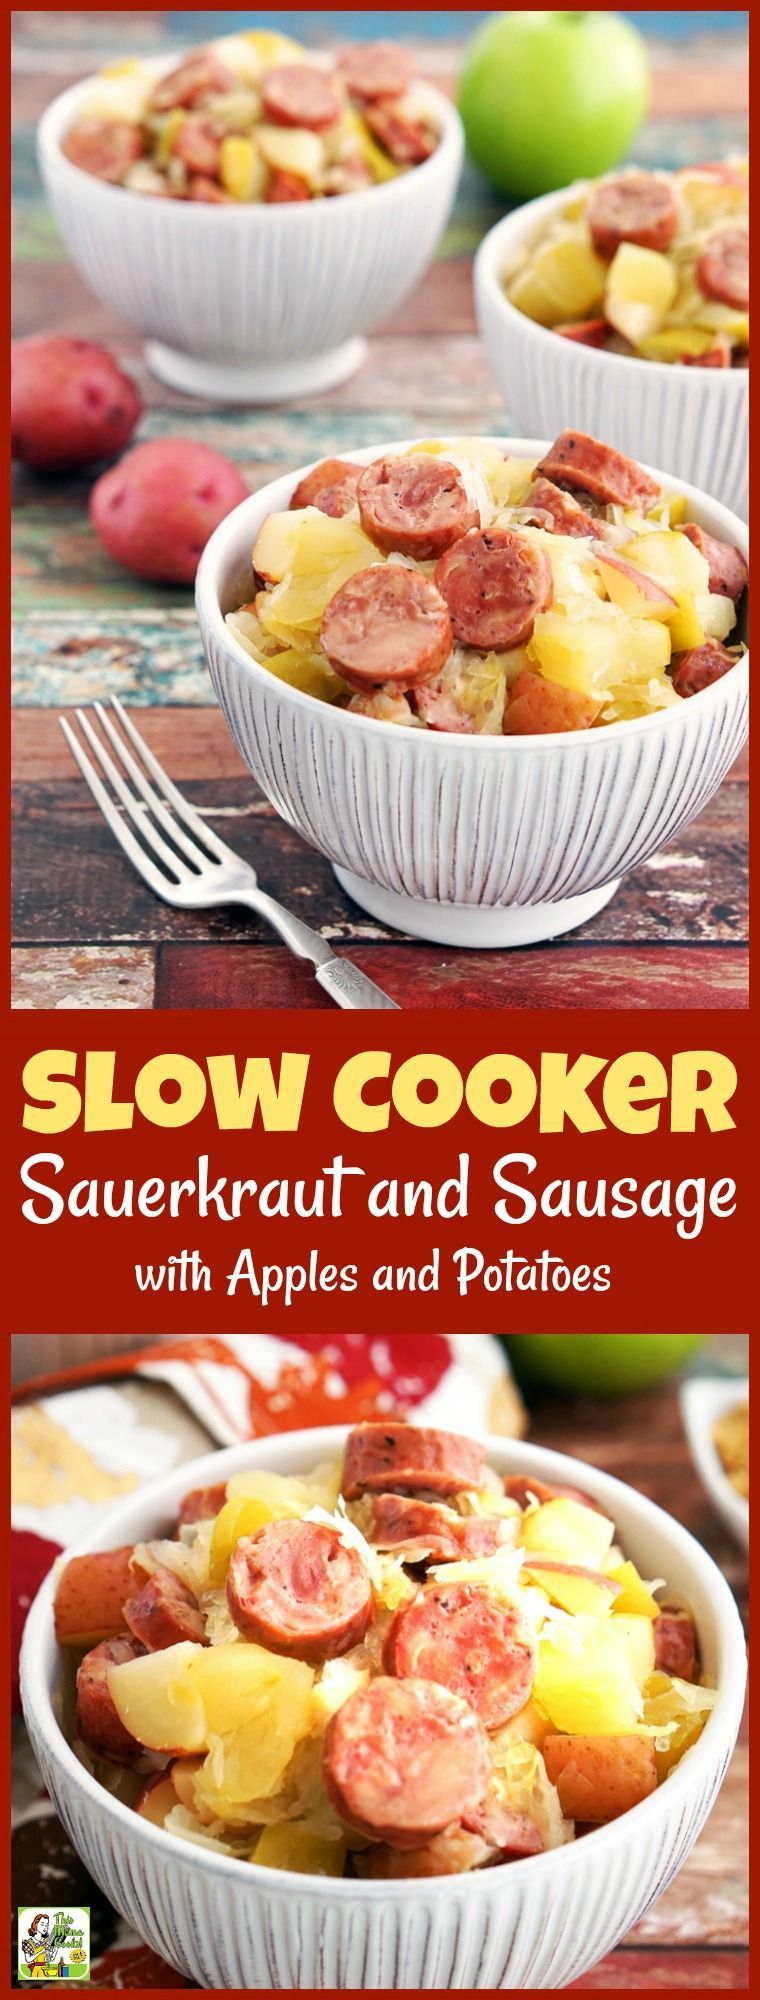 Slow Cooker Sauerkraut and Sausage with Apples and Potatoes #easypotluckrecipes Are you looking for a gluten free Crock-Pot recipe? This Slow Cooker Sauerkraut and Sausage with Apples and Potatoes takes only 15 minutes to prepare! Makes a great party or potluck recipe, too. #recipe #easy #recipeoftheday #healthyrecipes #glutenfree #easyrecipes #dinner #easydinner #sausage #sauerkraut #apples #potatoes #slowcooker #crockpot #easypotluckrecipes